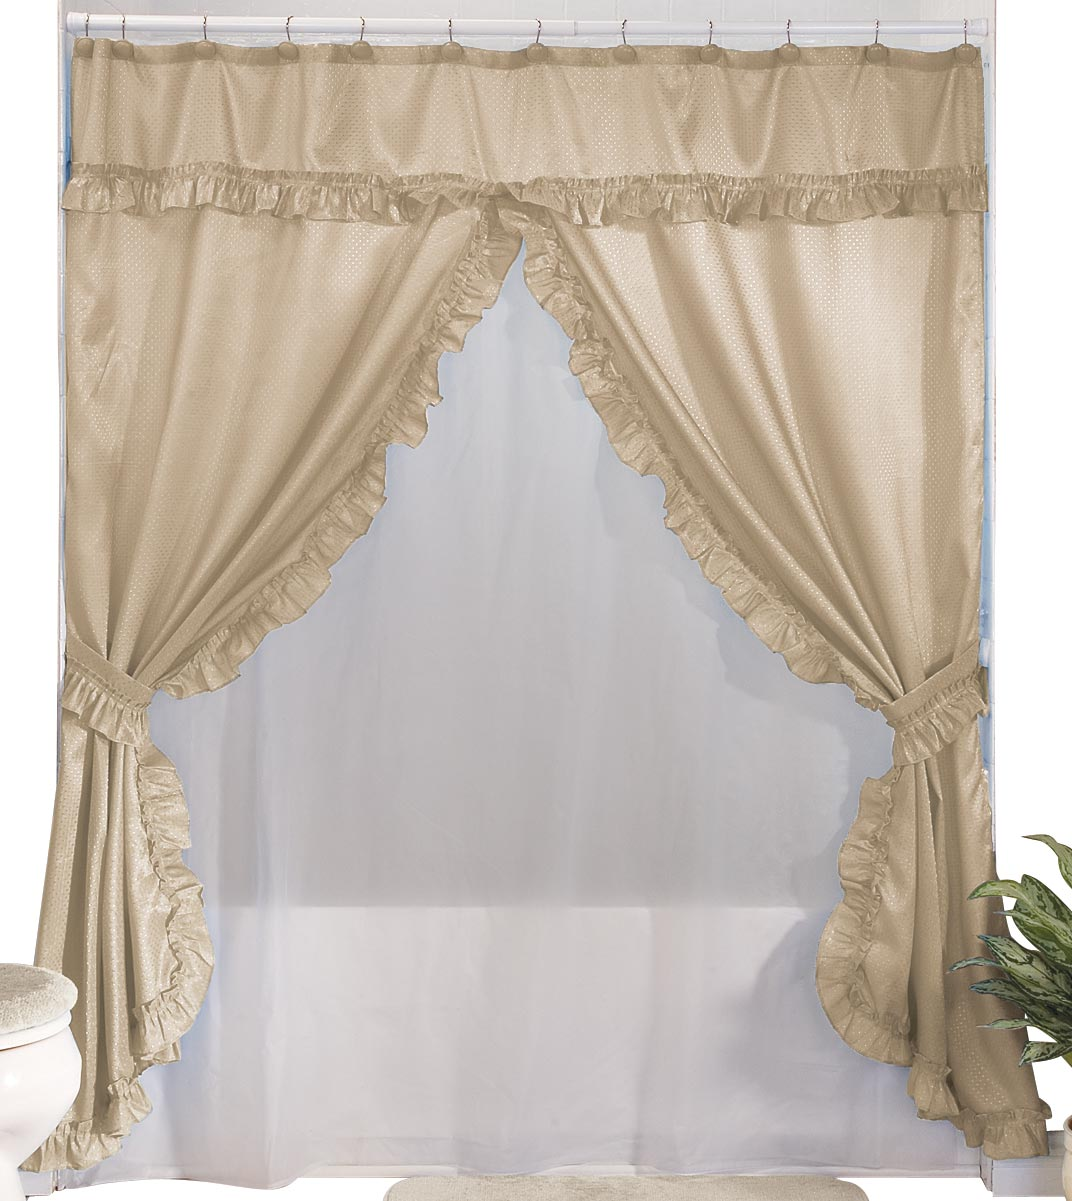 Walterdrake Double Swag Shower Curtains With Valance